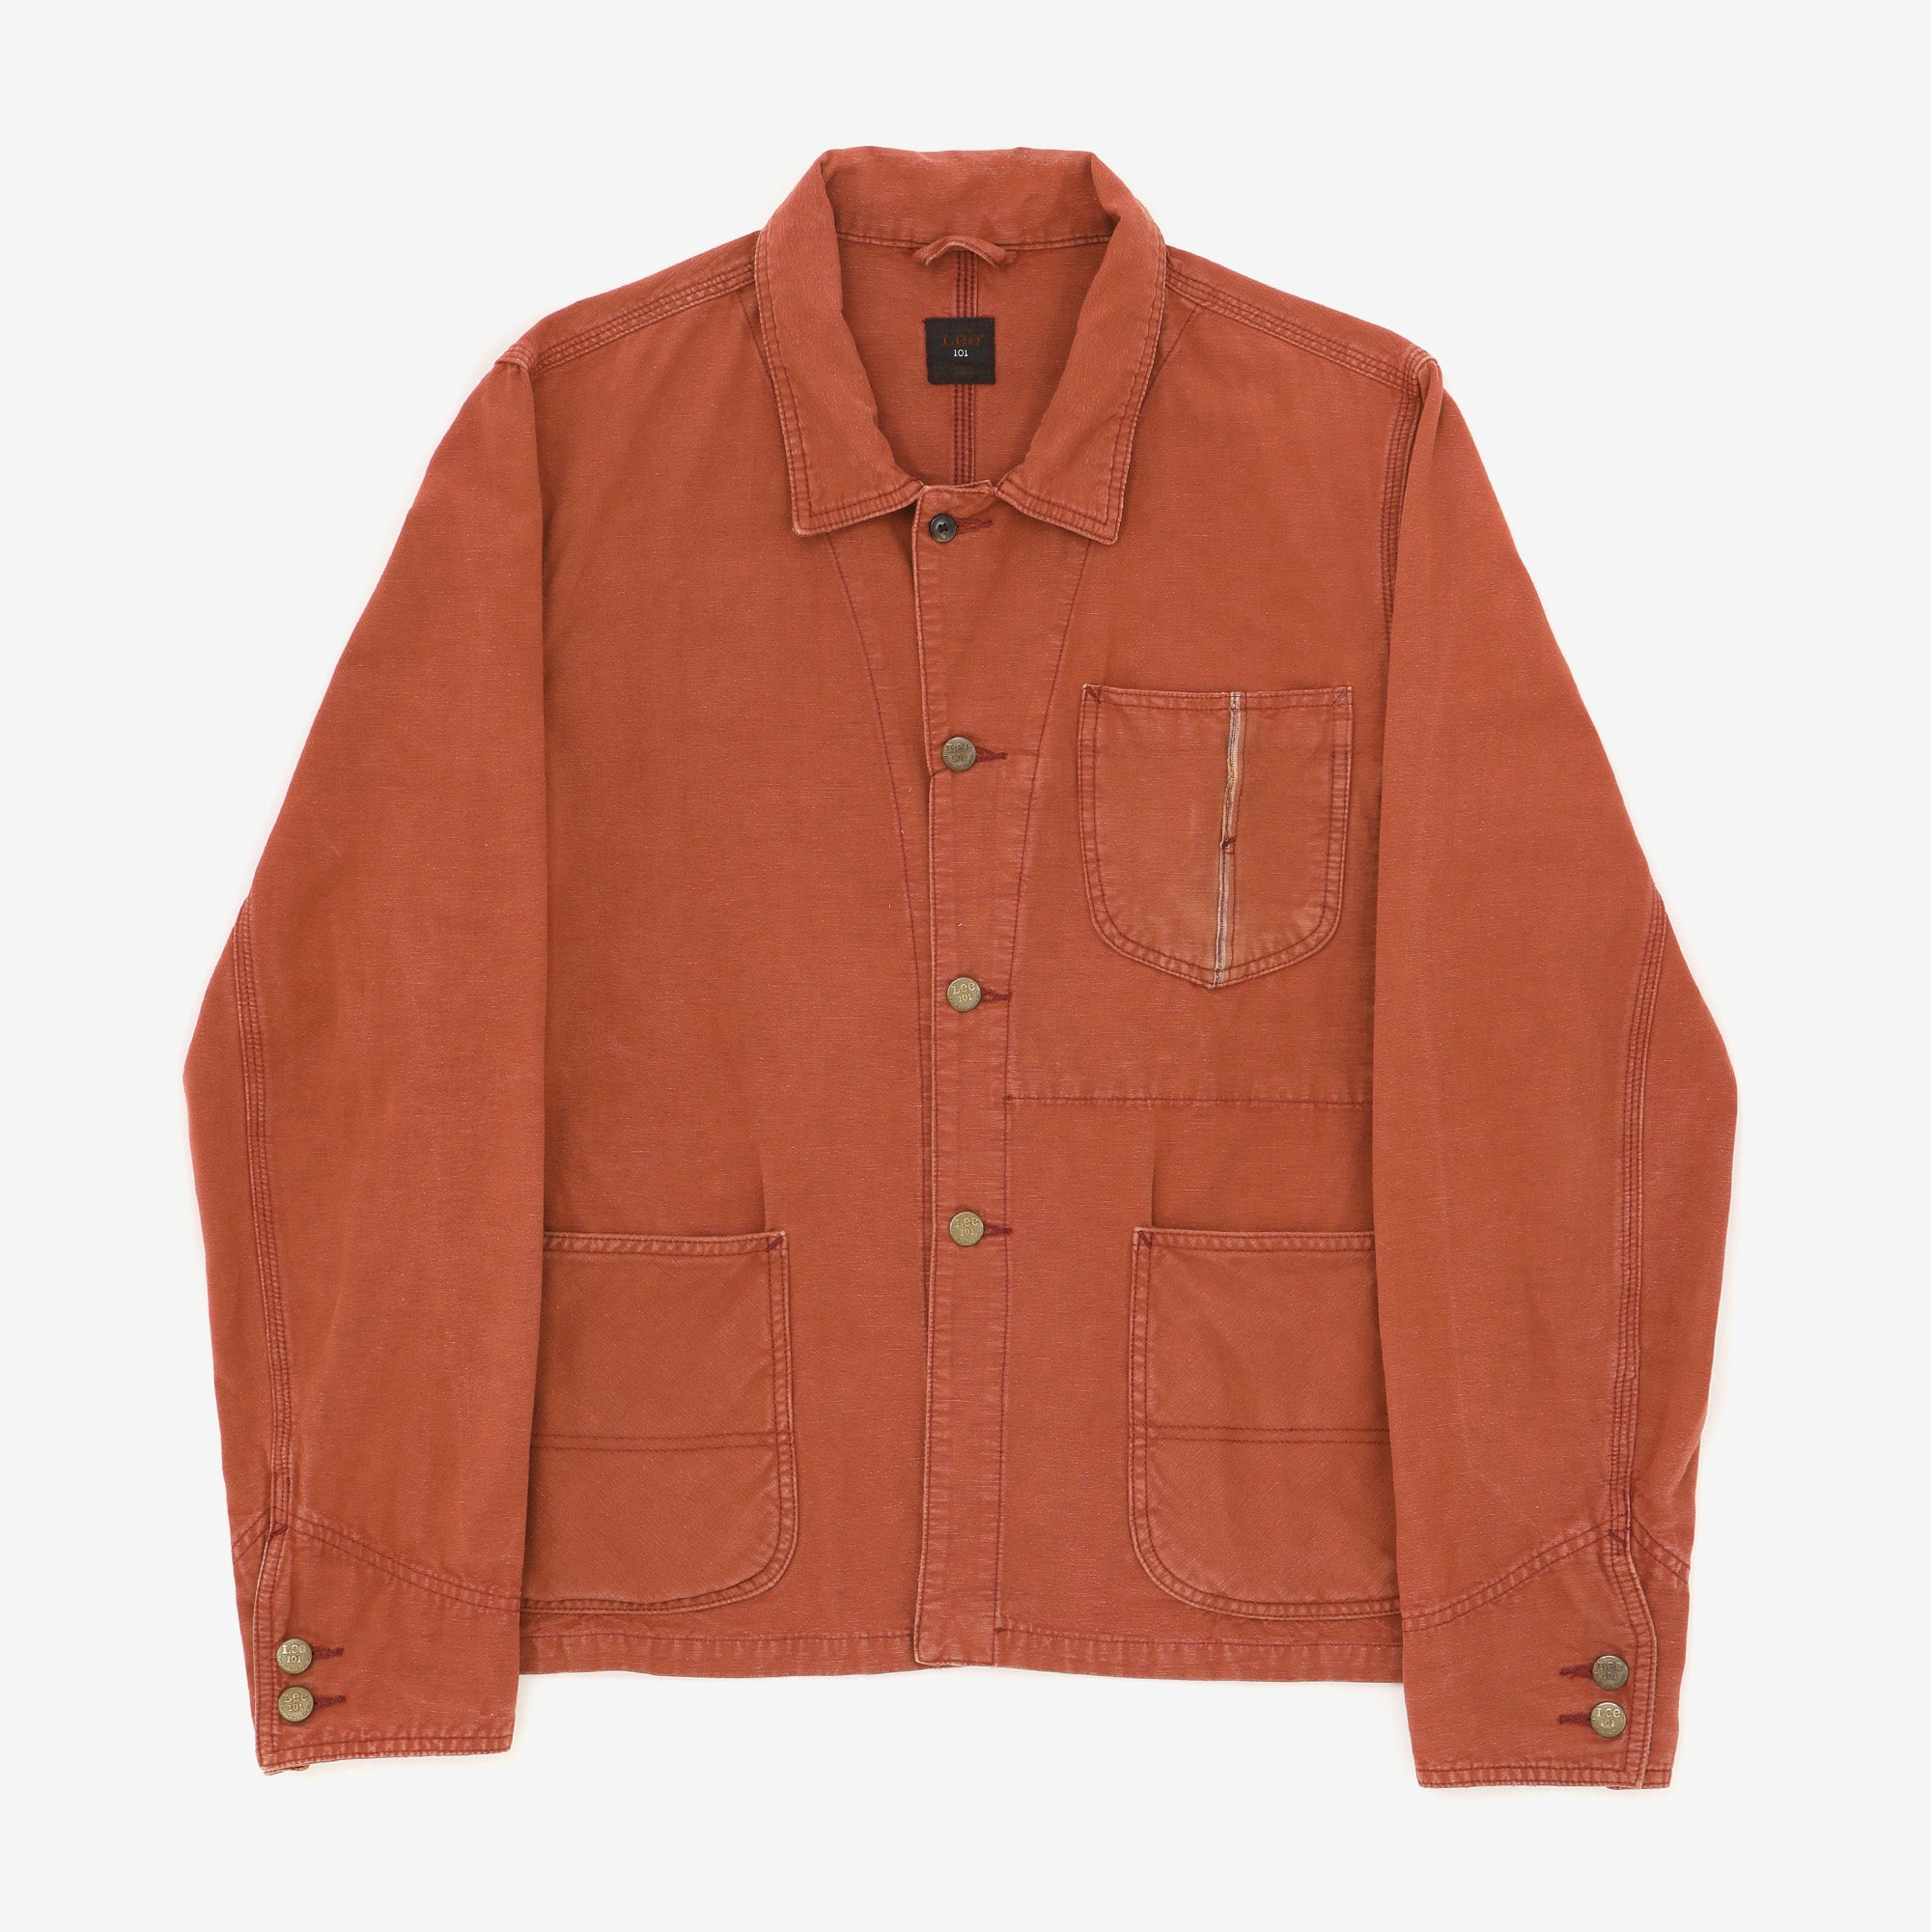 Lee 101 / Coverall Jacket